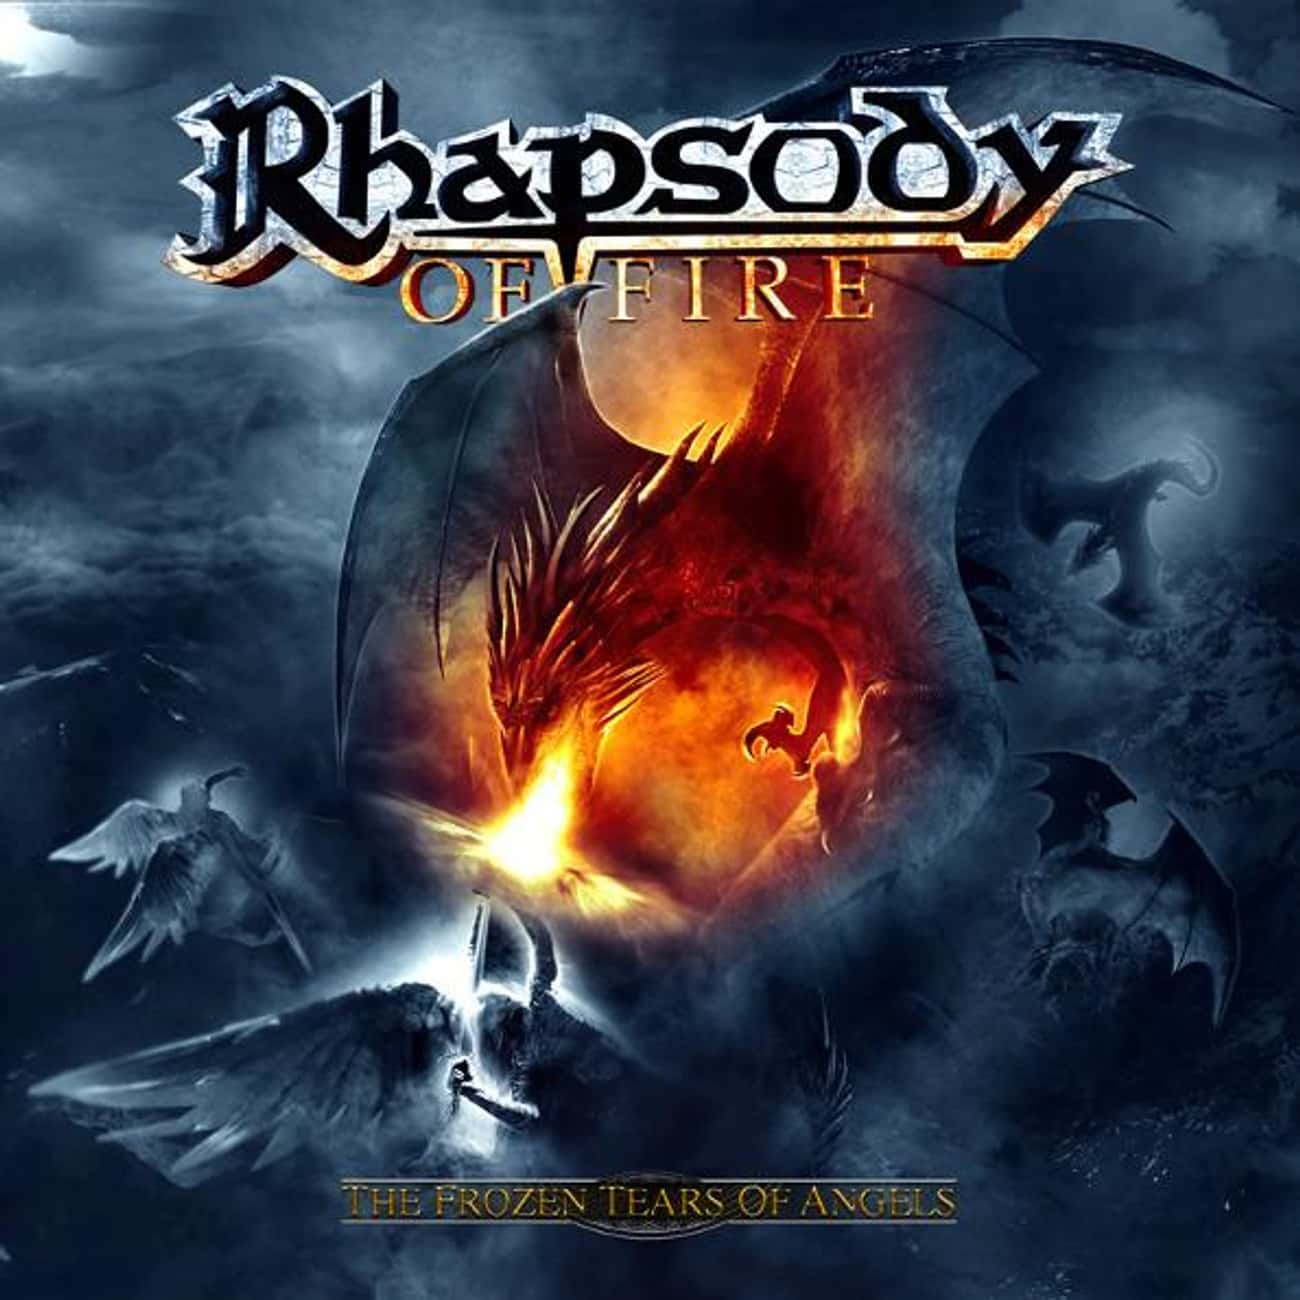 The Frozen Tears of Angels is listed (or ranked) 1 on the list The Best Rhapsody Of Fire Albums of All Time